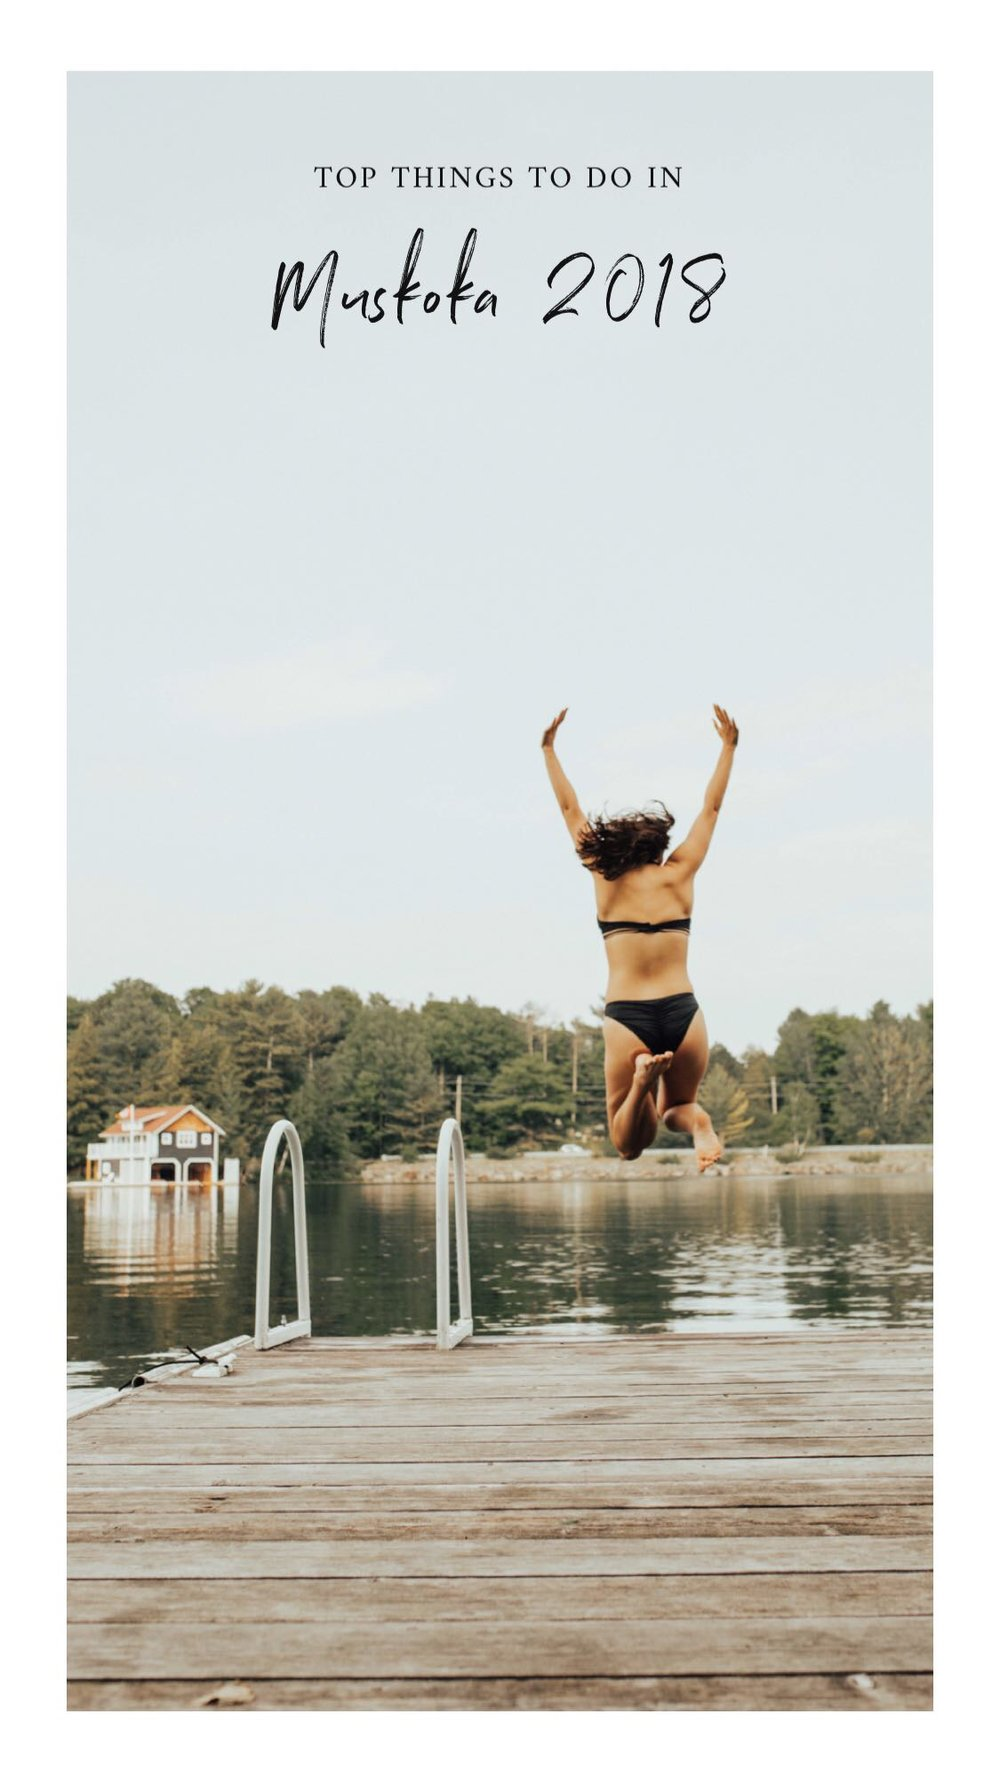 muskoka - sunset boat rides, cozying by the fire + cottage country livin'.